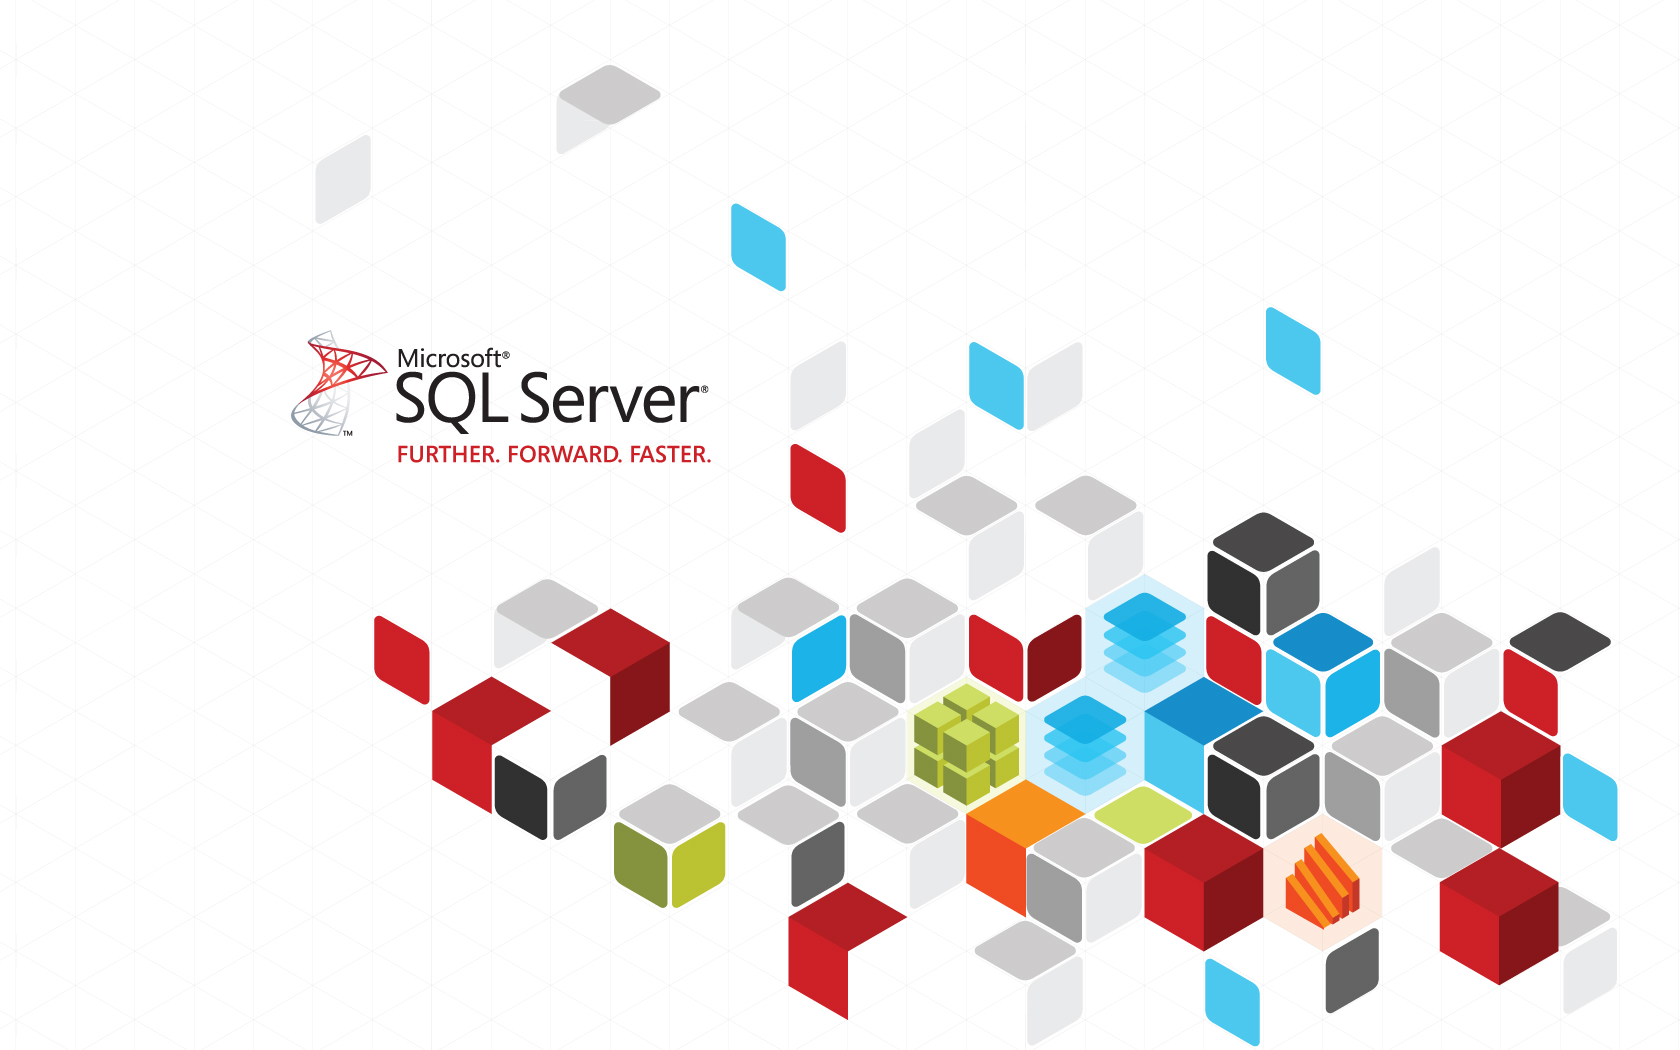 SQL Server 2012 RC0 available   Cindy Gross Small Bites of Big Data 1680x1050